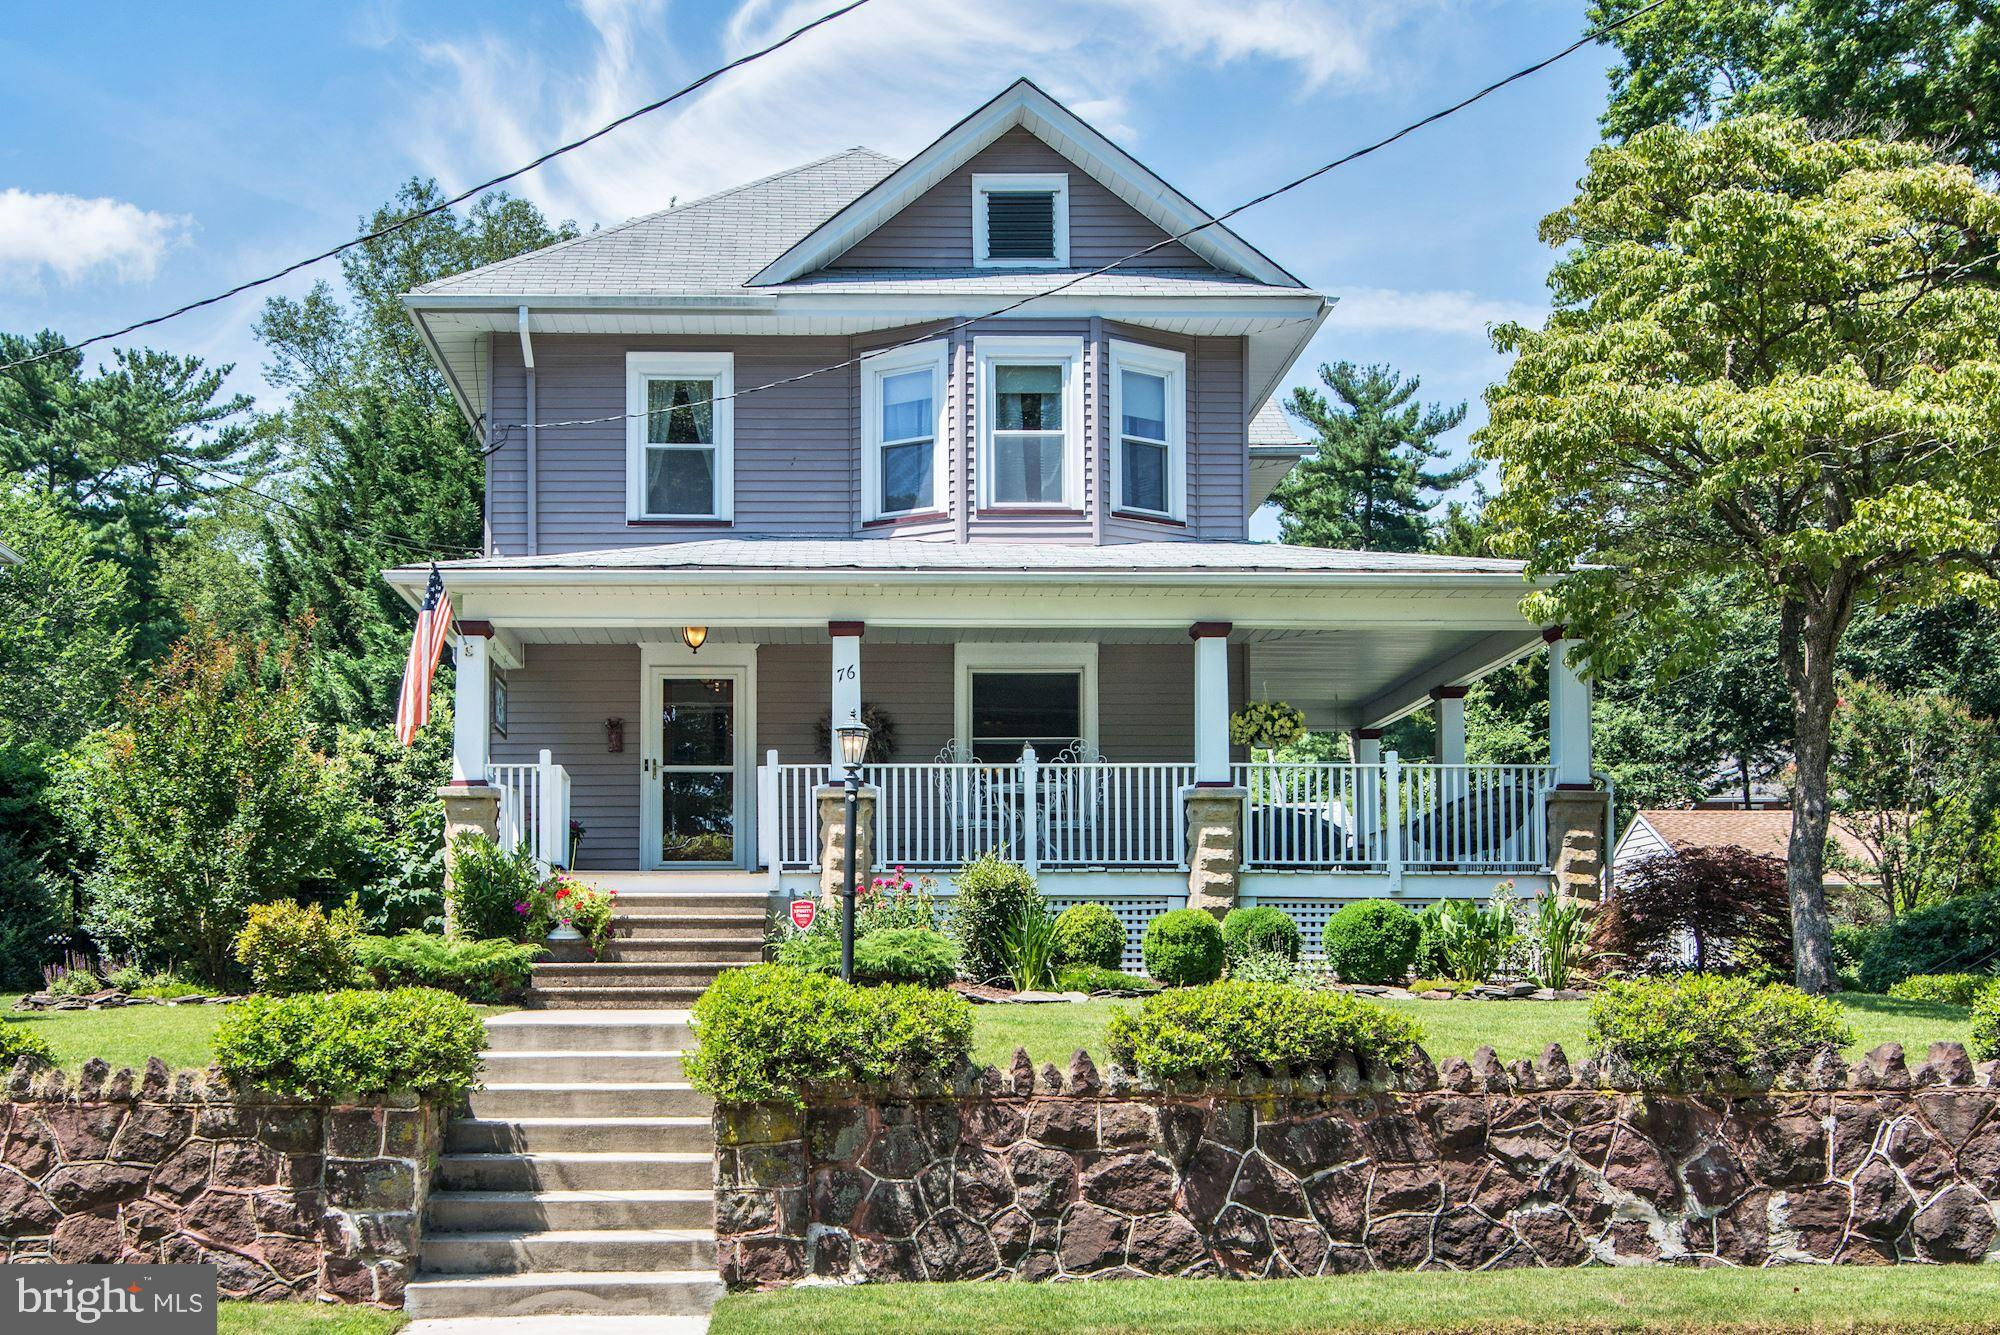 76 COLONIAL AVENUE, PITMAN, NJ 08071